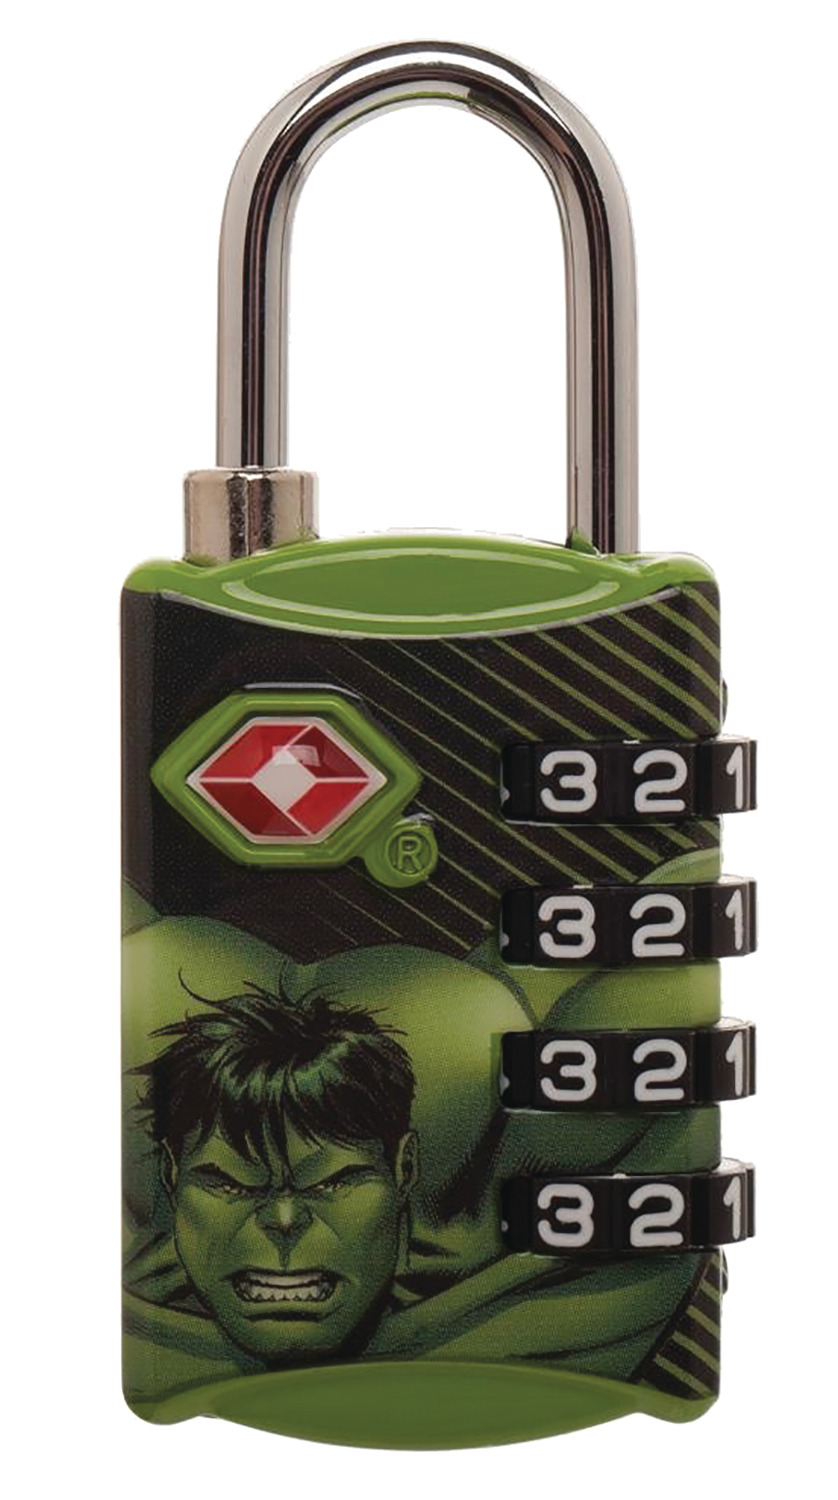 TSA Combination Lock - The Hulk